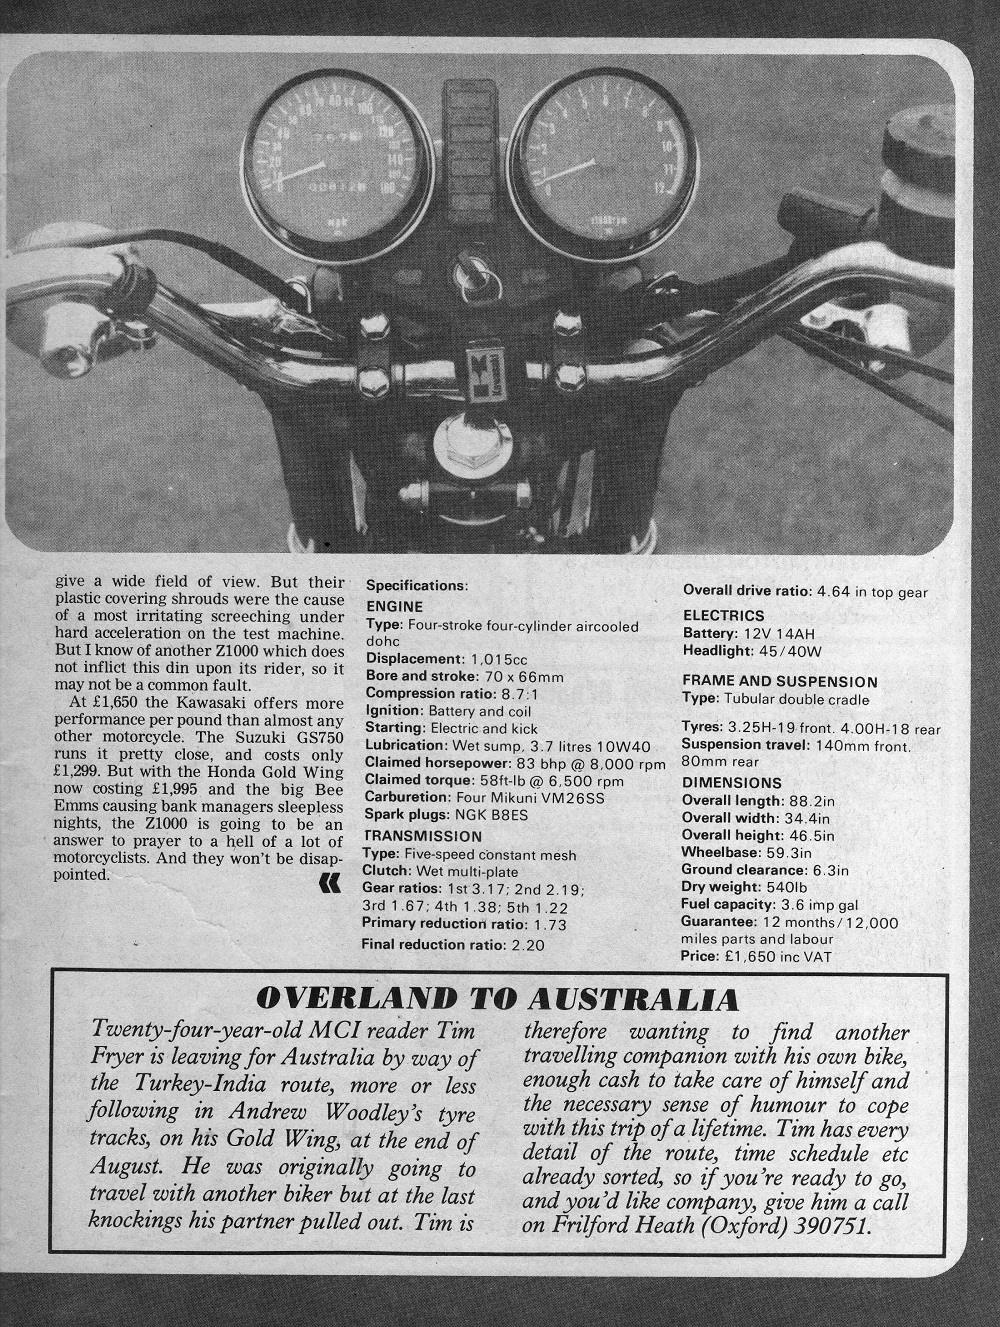 1977 Kawasaki Z1000 road test.6.jpg